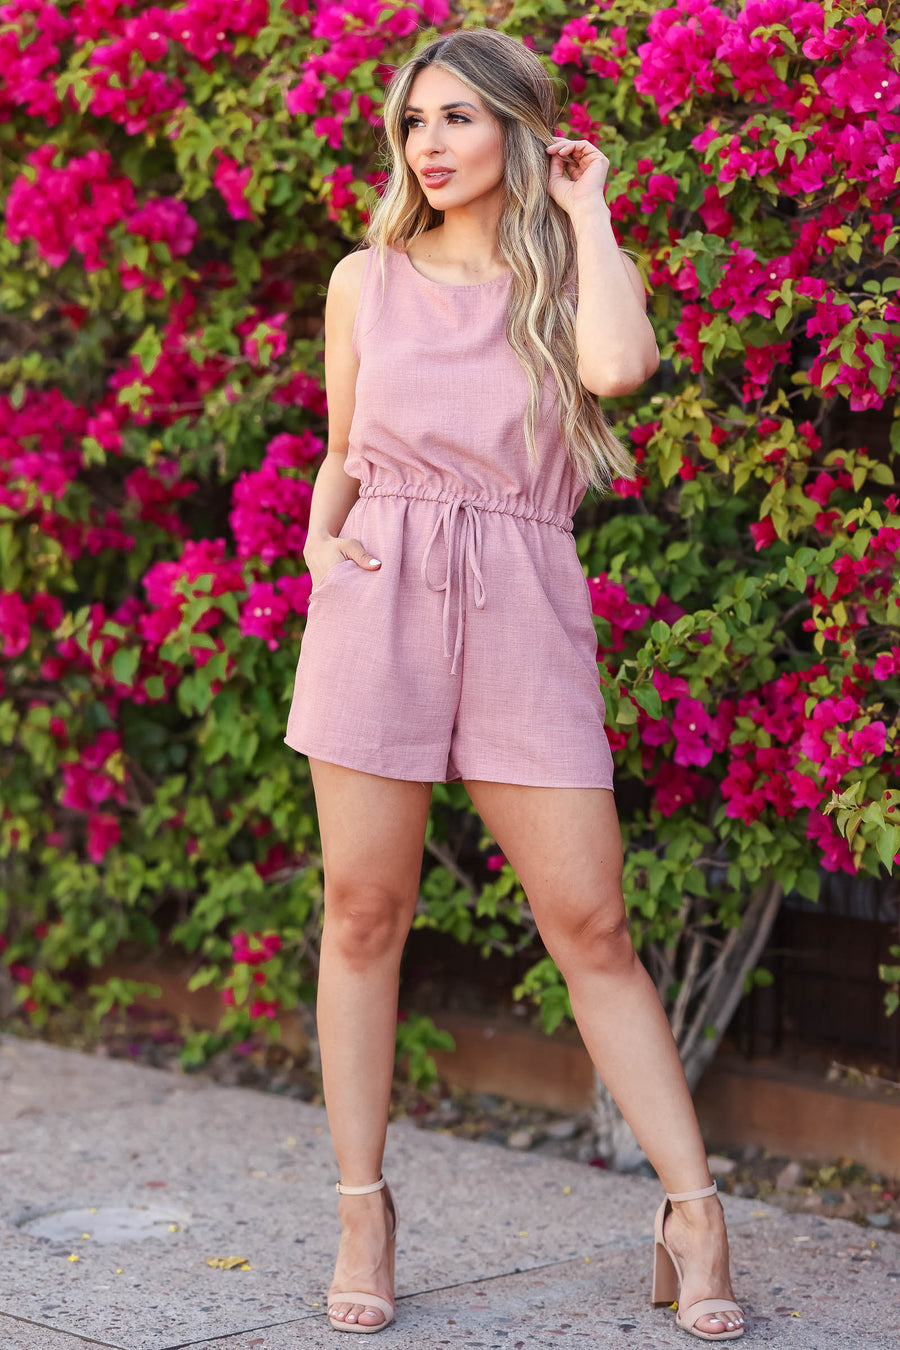 Summer of Love Romper - Dusty Rose closet candy women's trendy sleeveless woven romper front